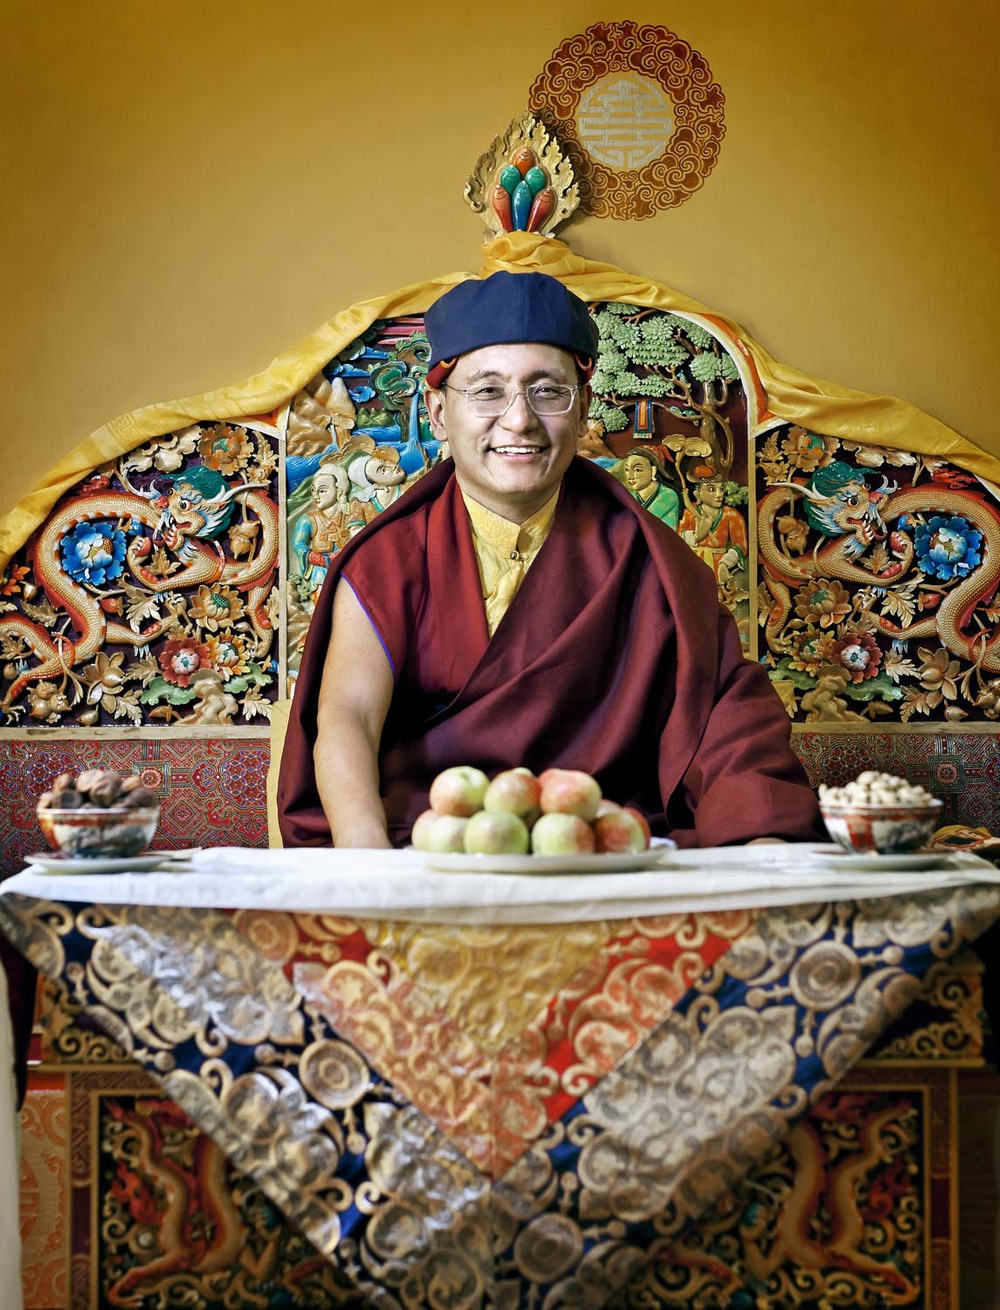 His Holiness the Gyalwang Drukpa, Hemis Monastery, Ladakh